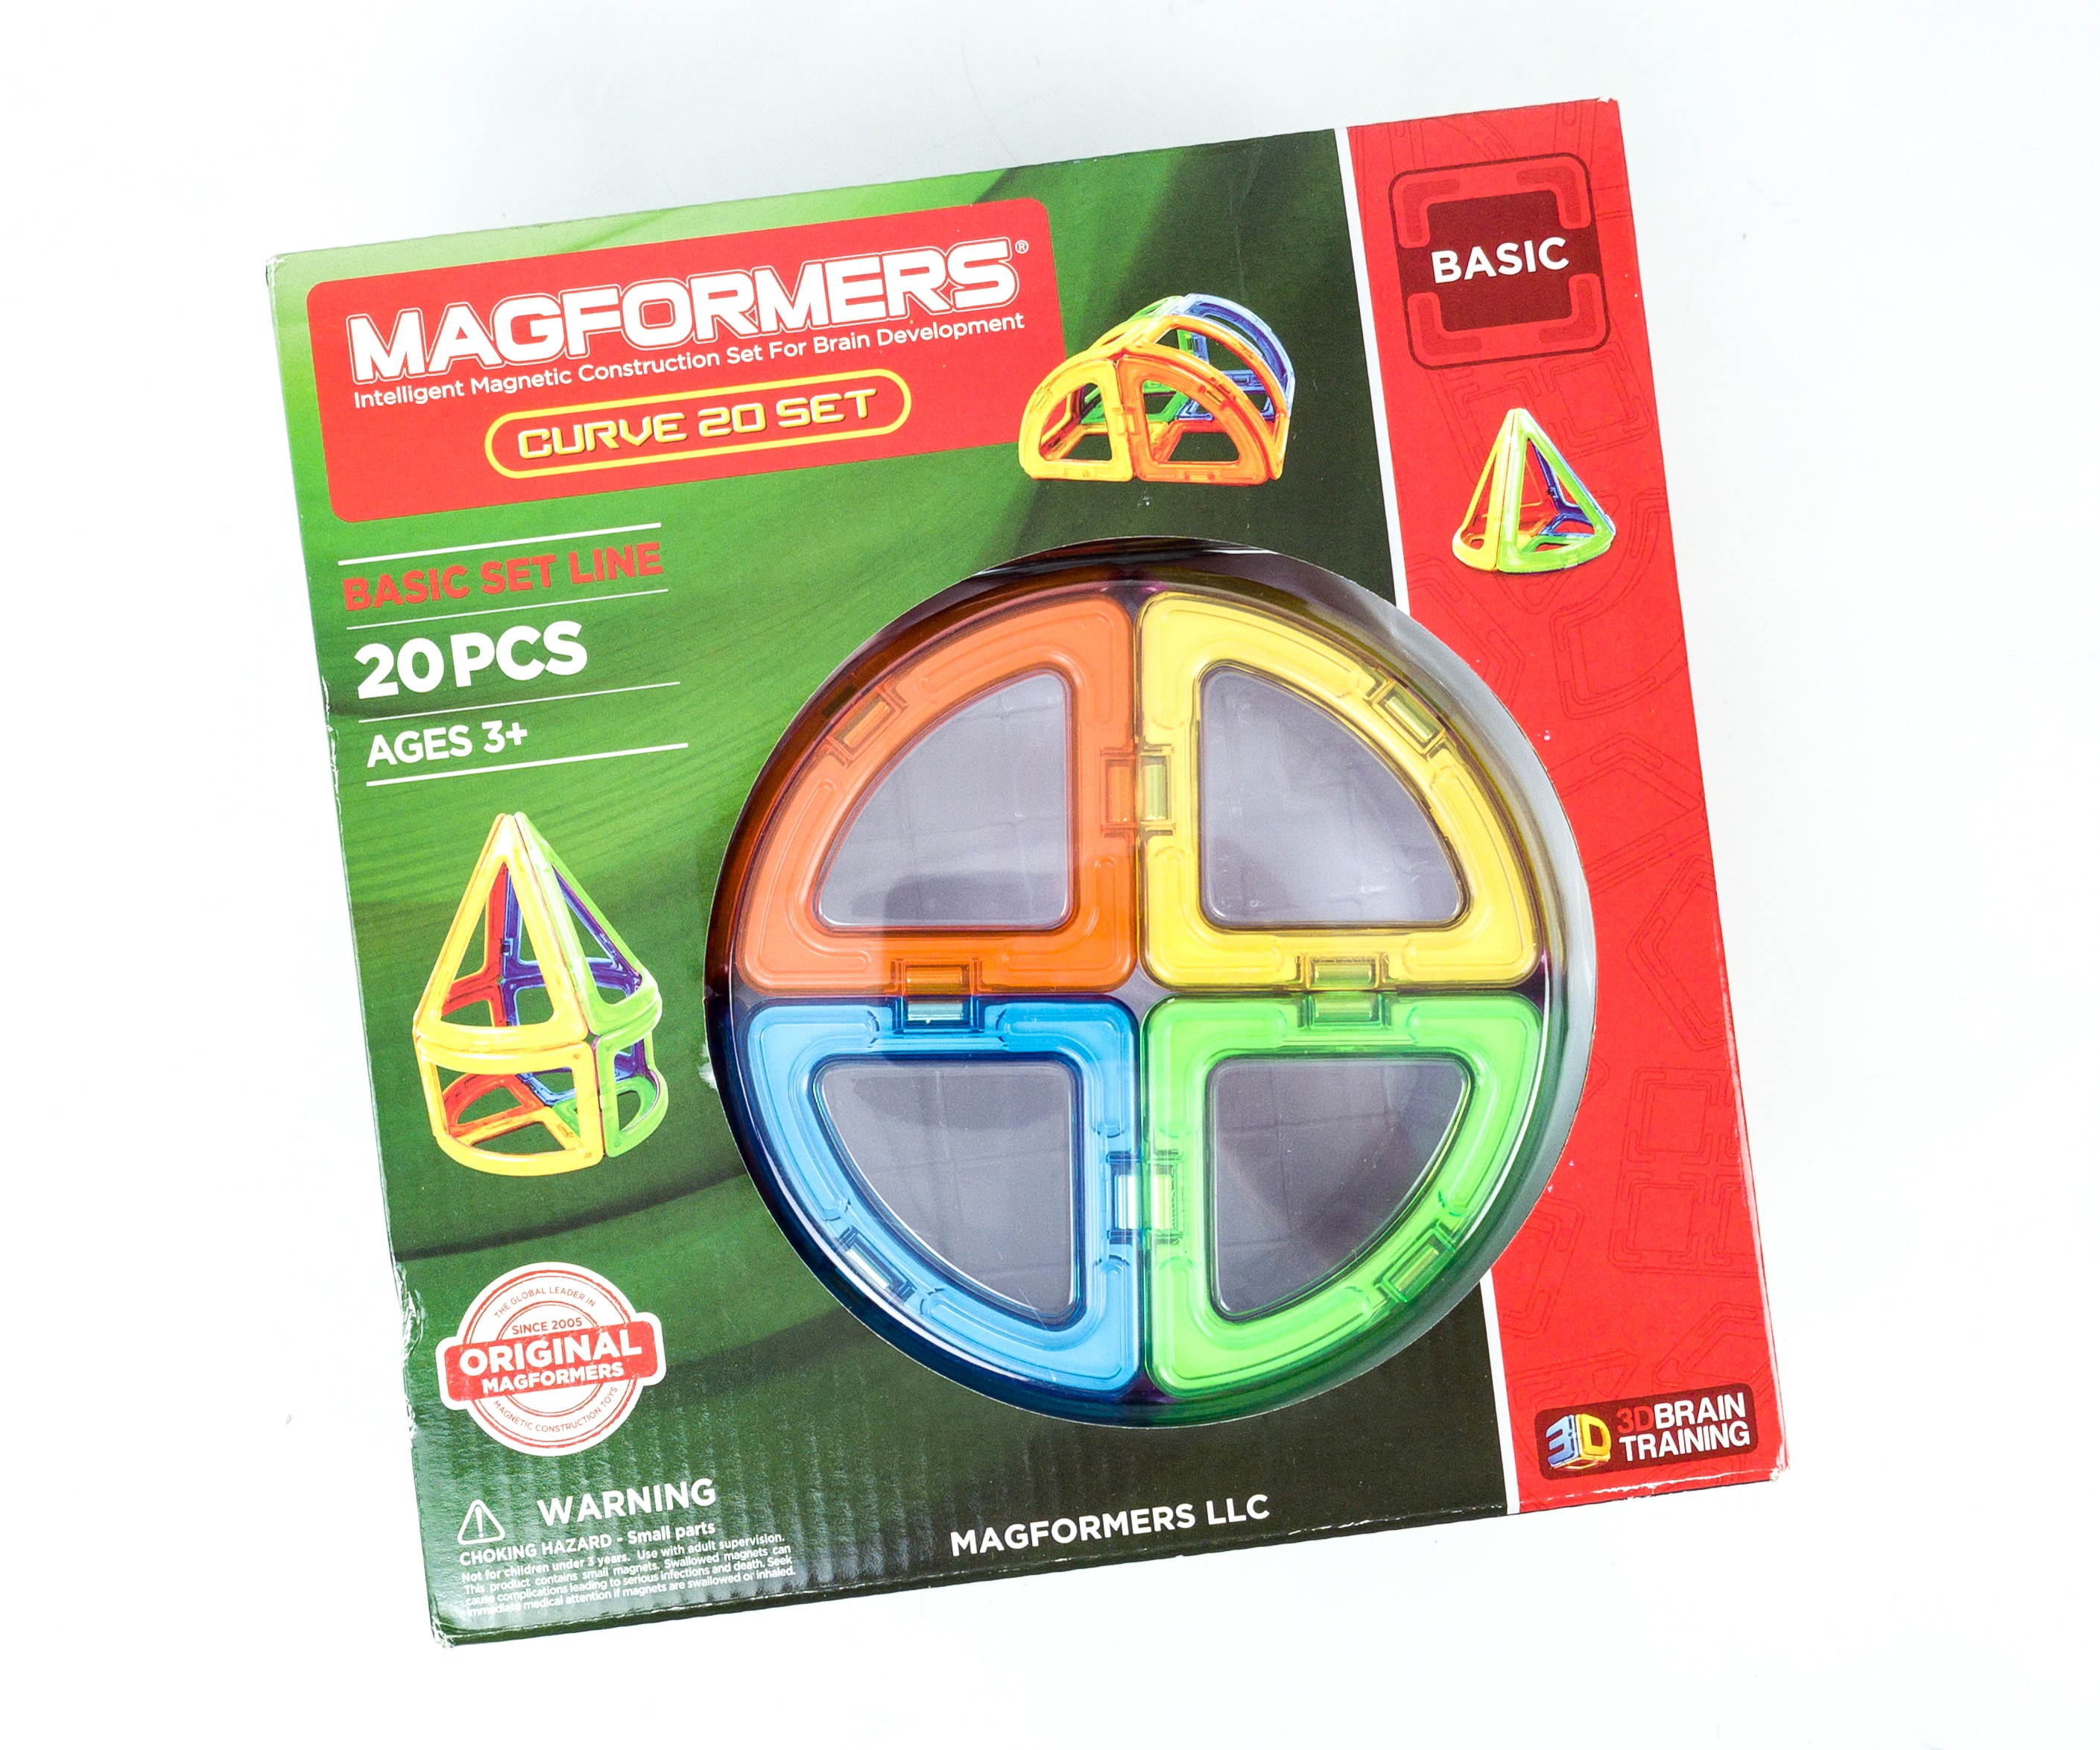 Amazon STEM Toy Club  Subscription Box Review – 3 to 4 Year Old MAGFORMERS CURVE Box